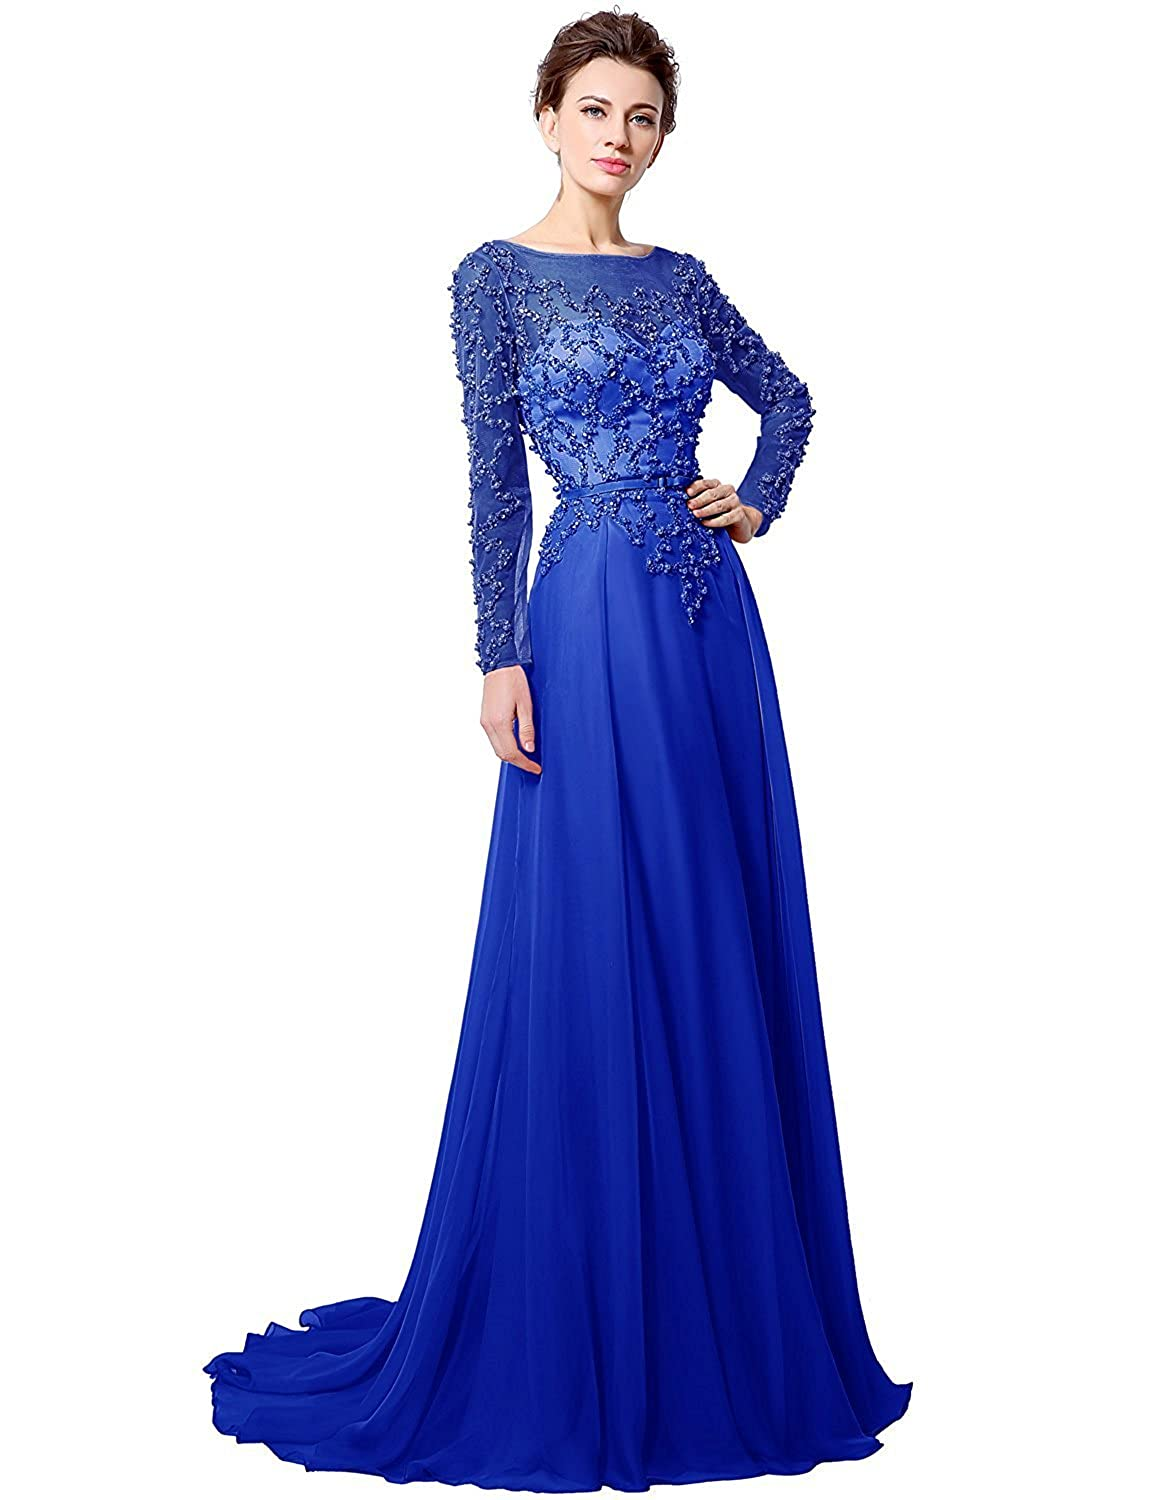 051royal bluee Sarahbridal Womens Lace Prom Dresses Formal Evening Gown with Half Sleeve SD328